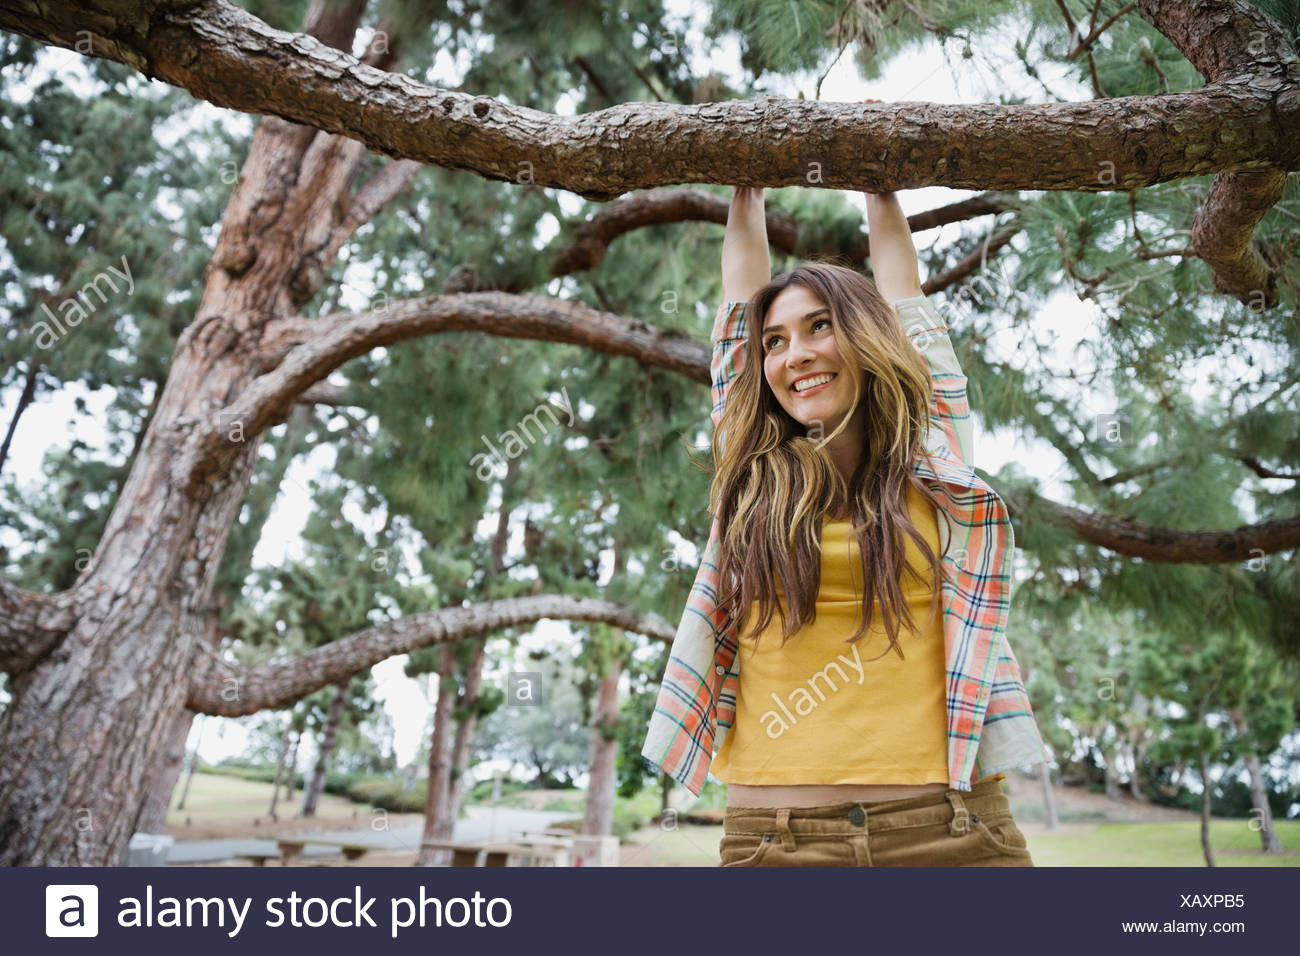 Happy young woman looking up while hanging on tree branch in park - Stock Image